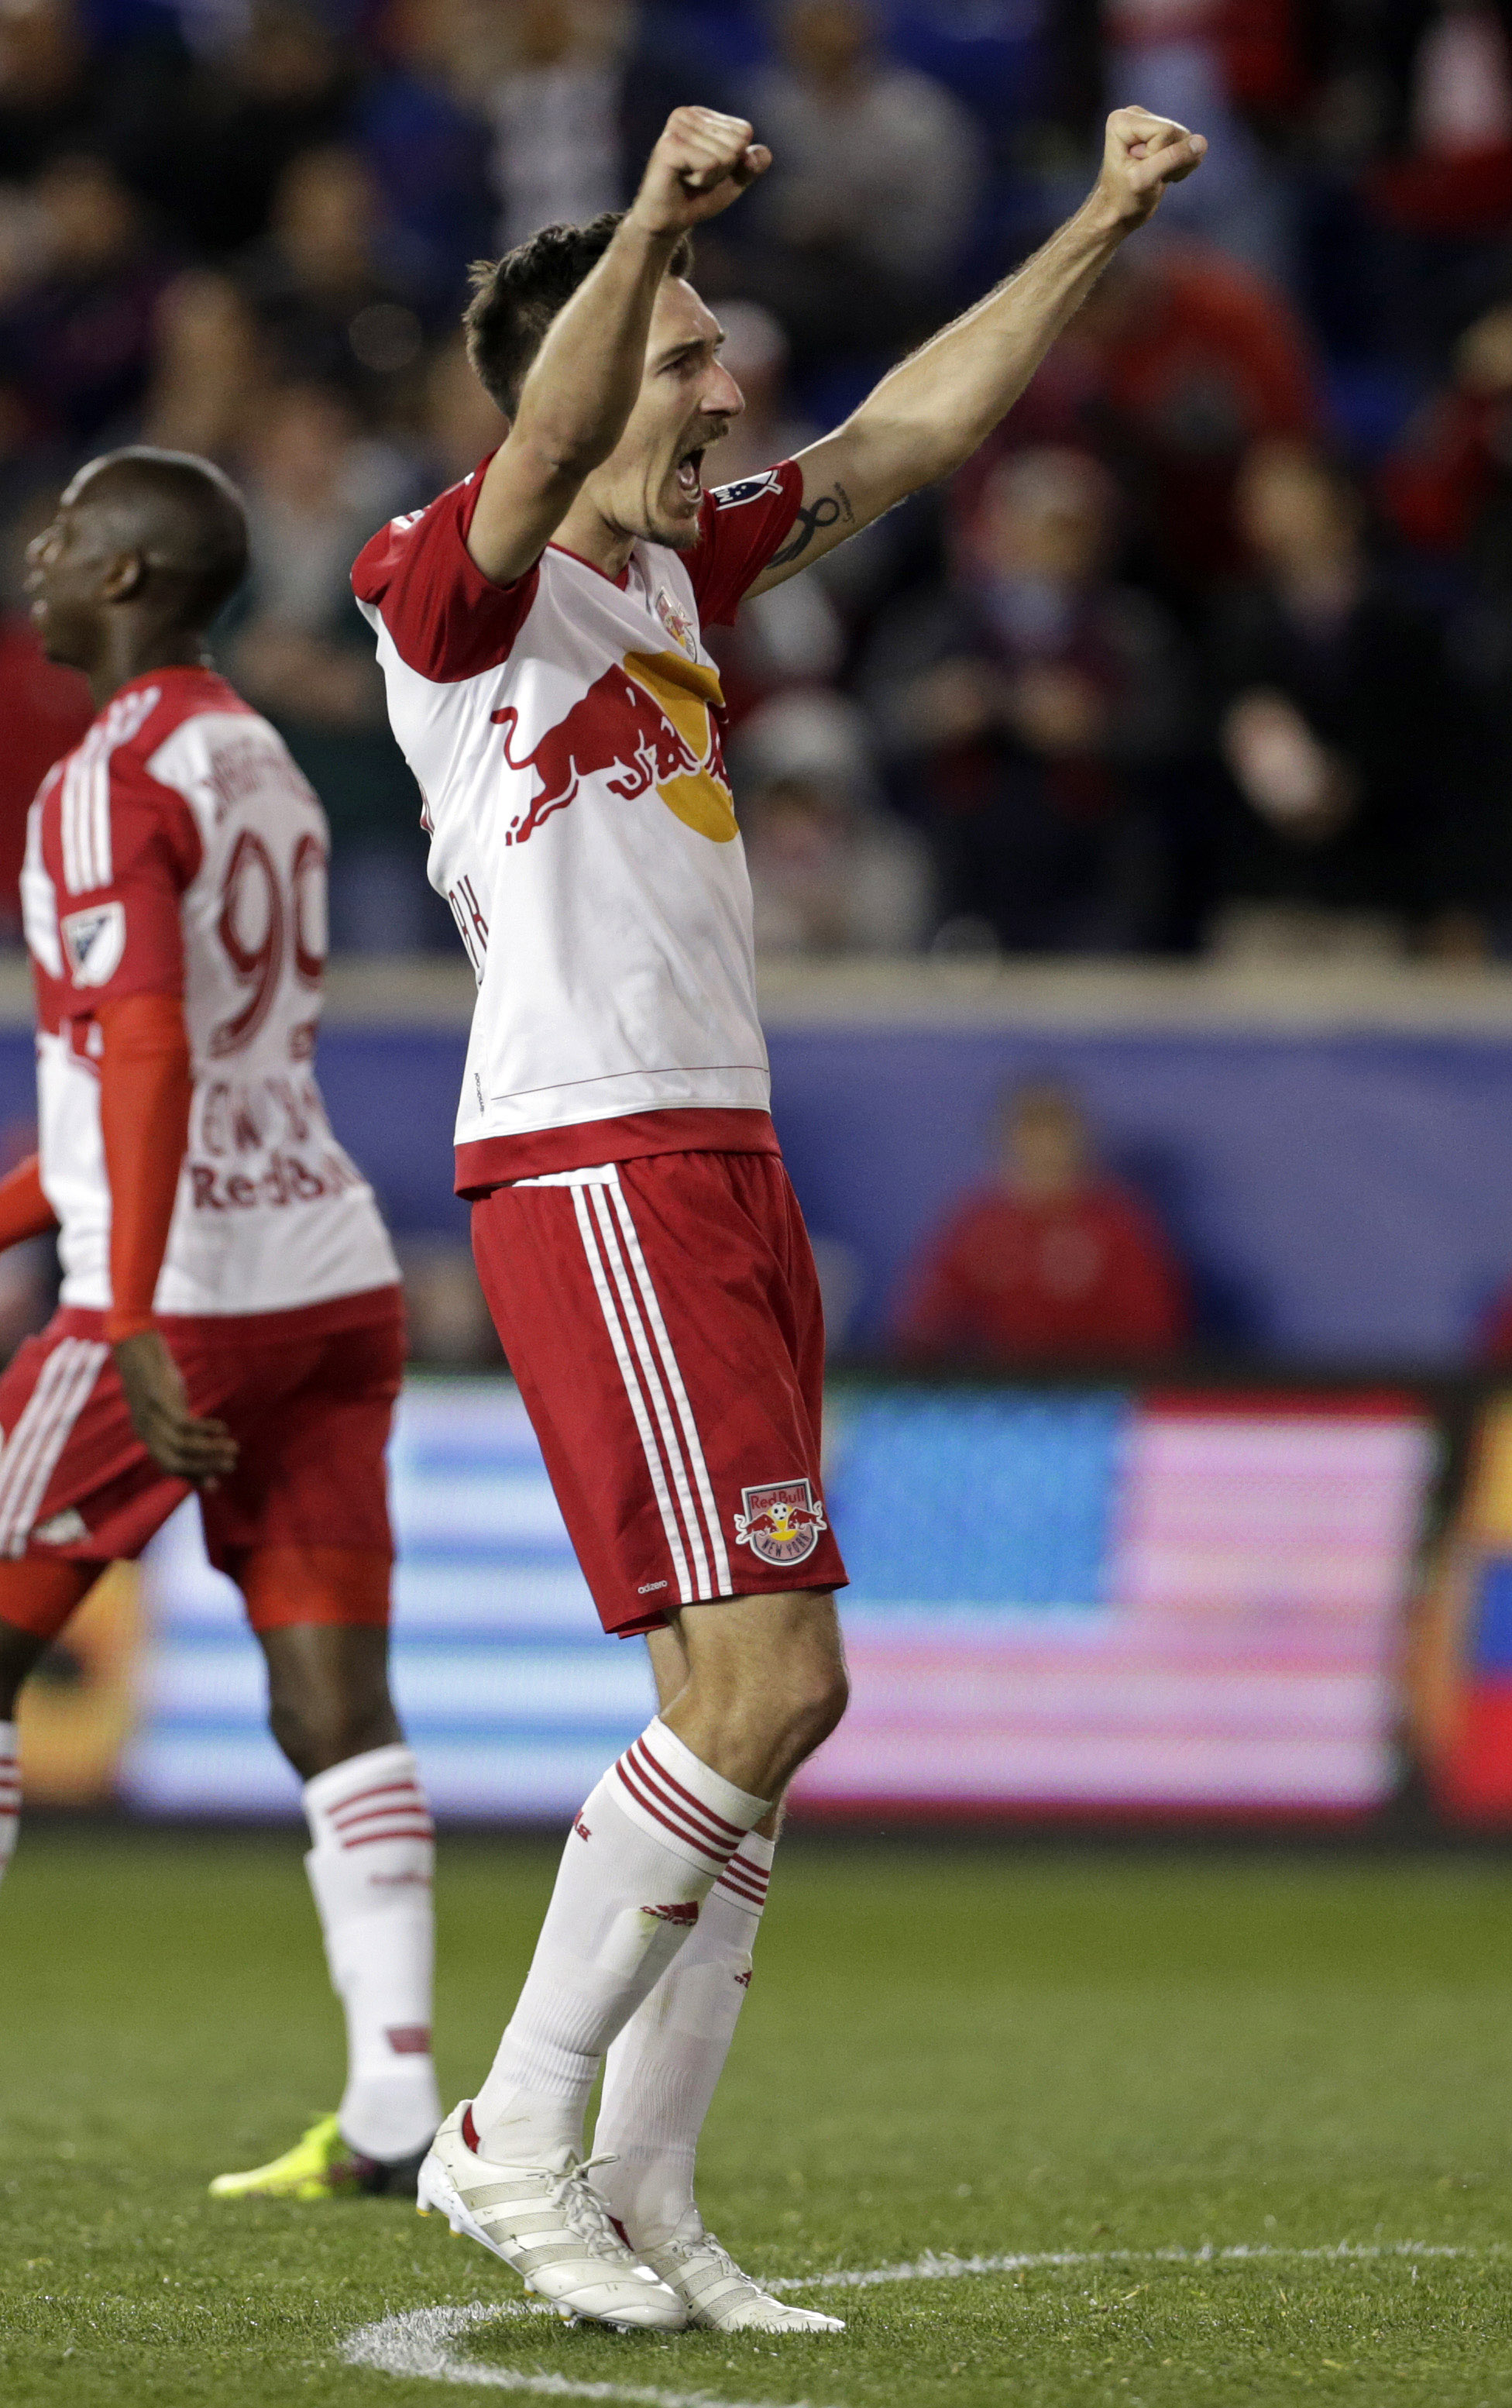 The NYRB midfielder has been putting up big scores this season, and plays twice this week. Buy!